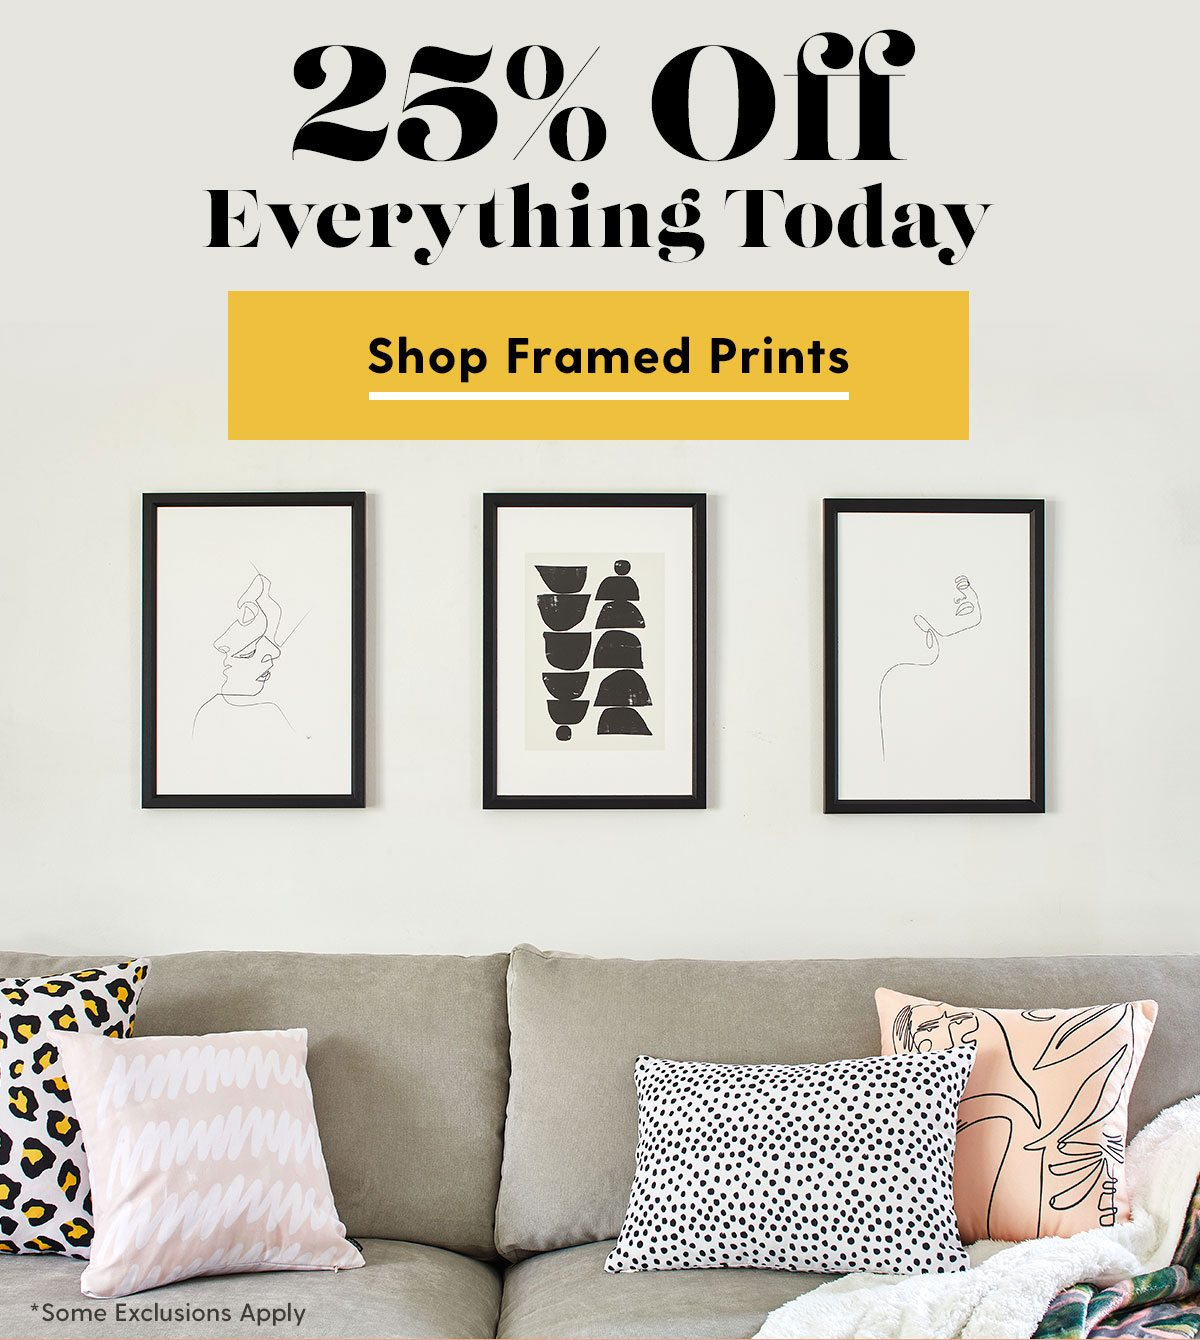 25% Off Everything Today - Shop Framed Prints